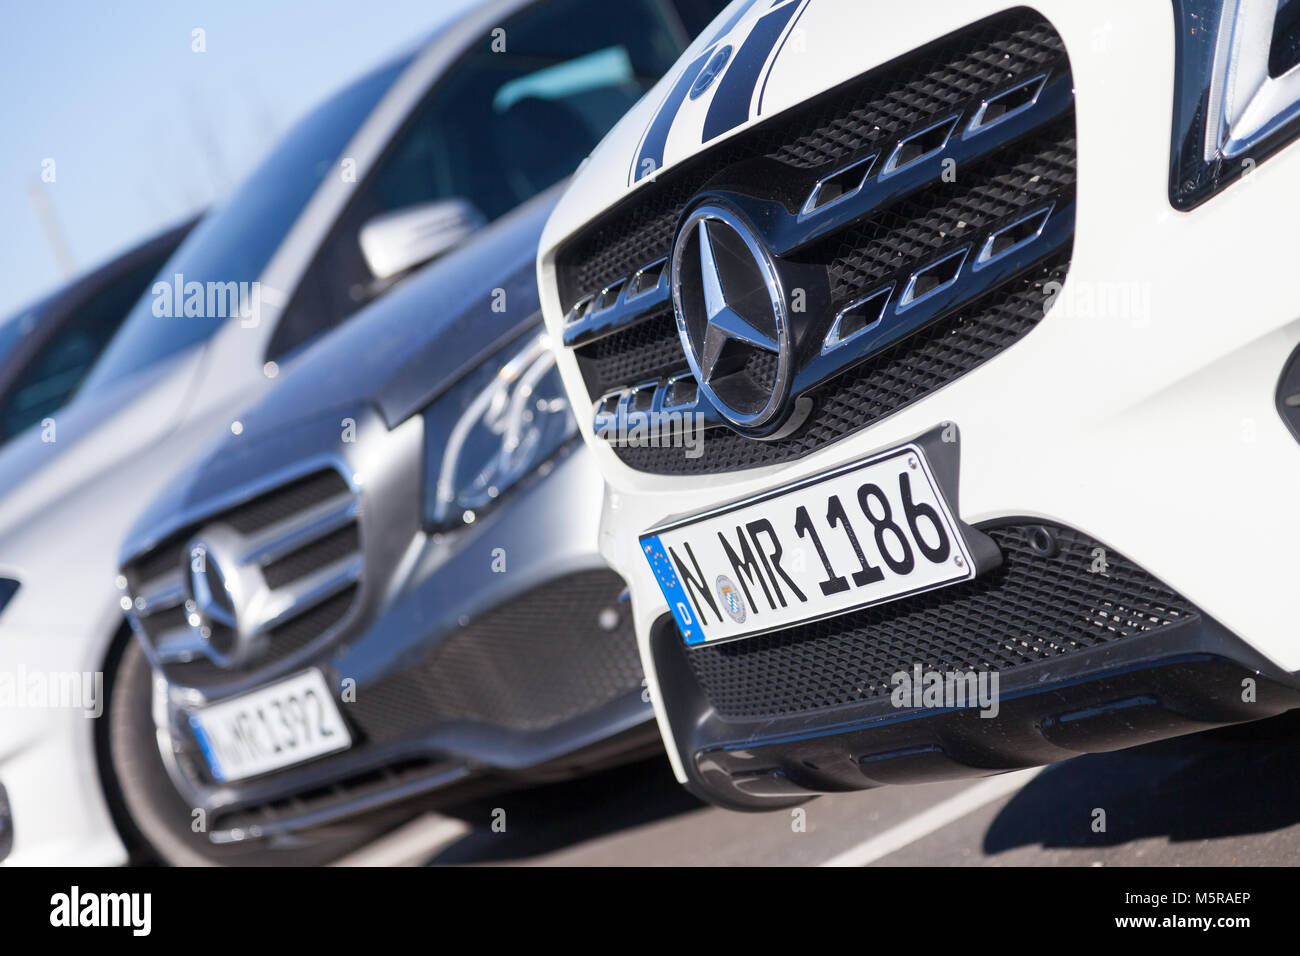 Fuerth germany february 25 2018 mercedes benz symbol on a fuerth germany february 25 2018 mercedes benz symbol on a car mercedes benz is a global automobile marque and a division of the german company biocorpaavc Choice Image